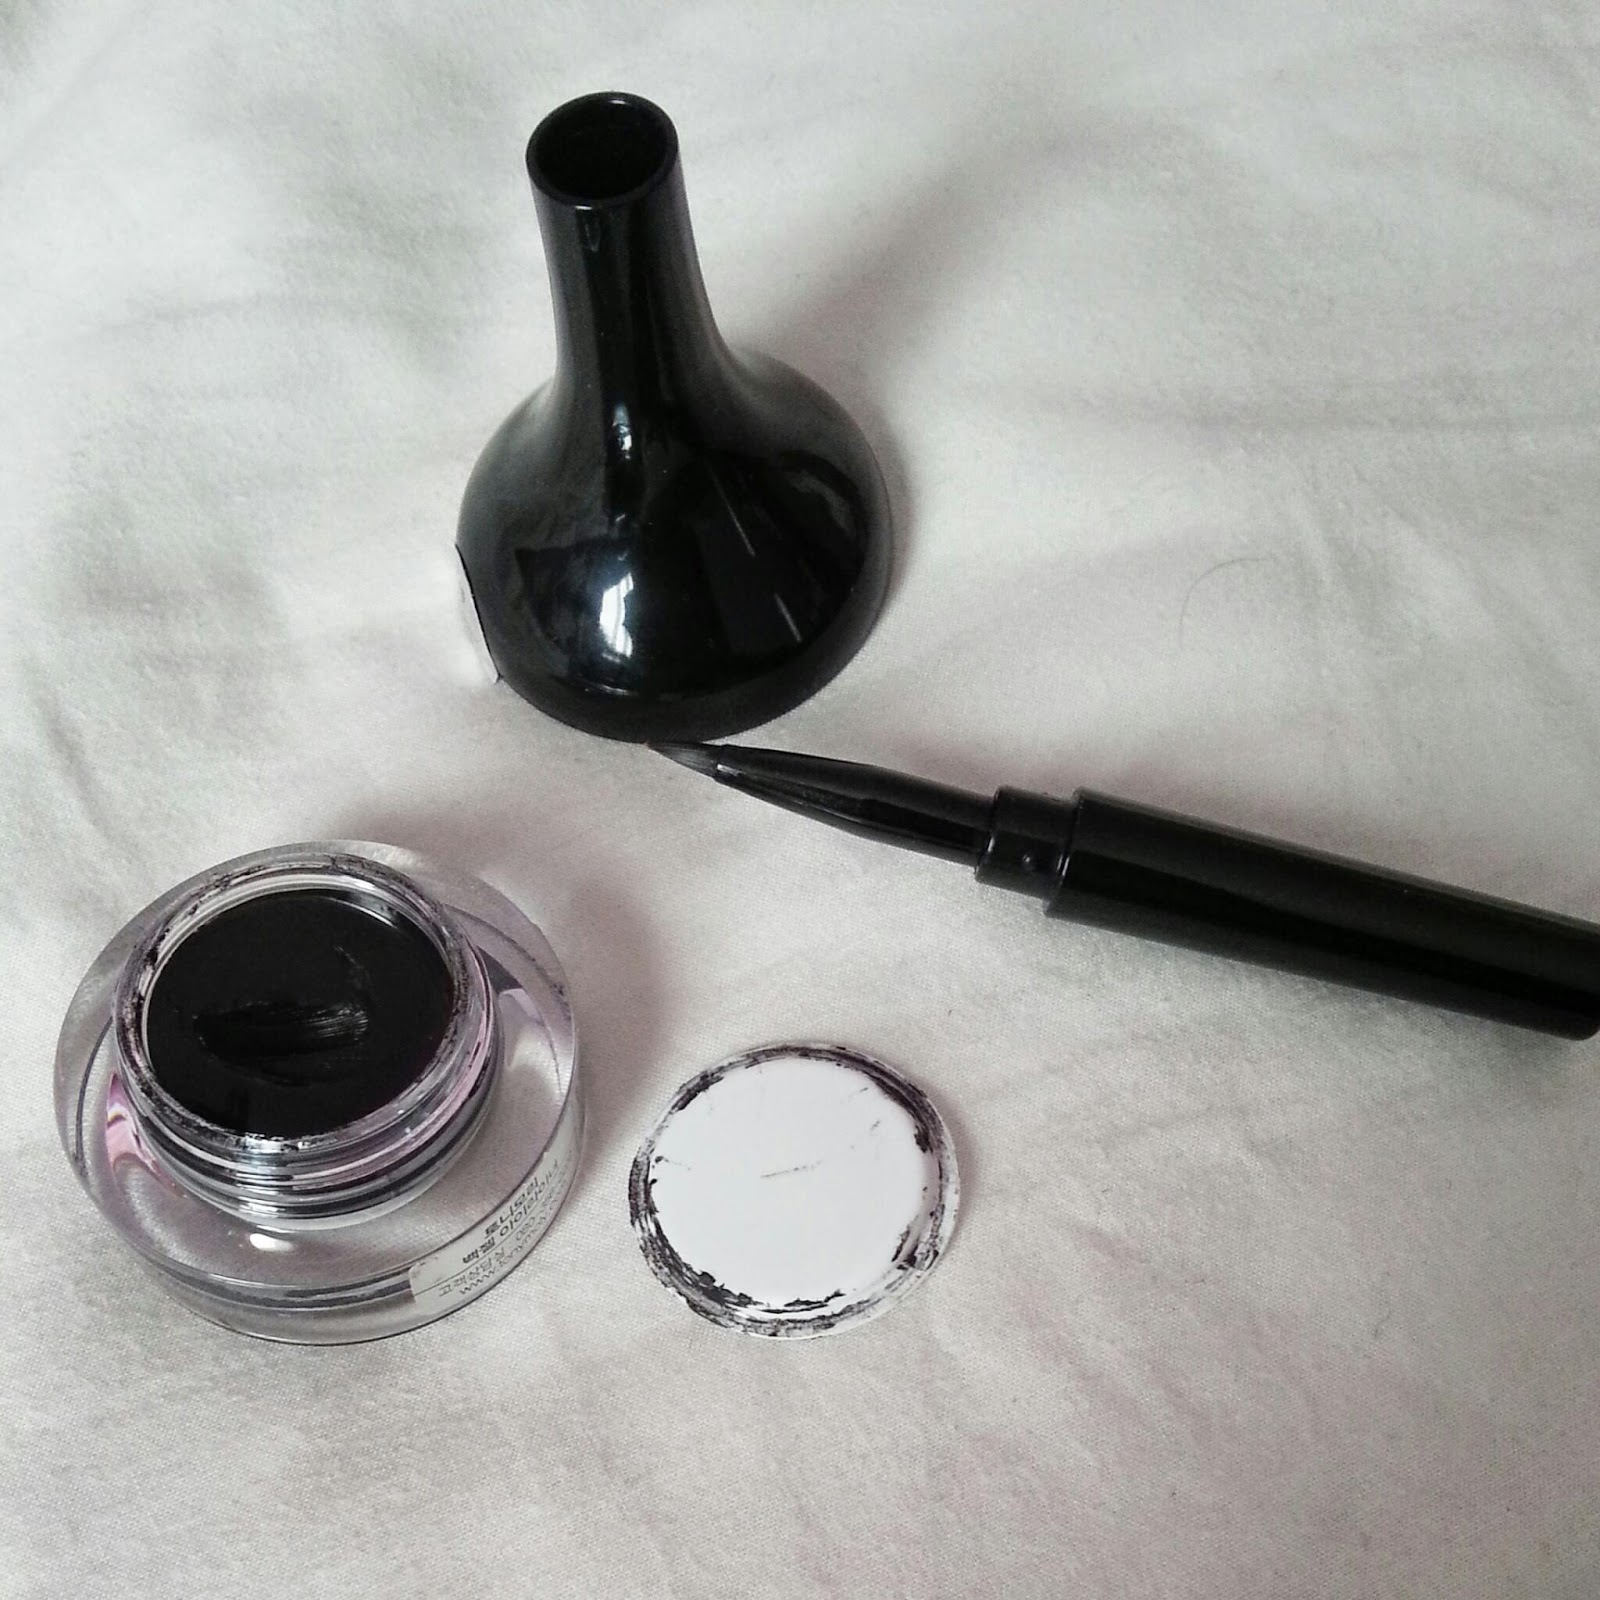 gemsescape: Tony Moly Backstage Gel Eyeliner Review